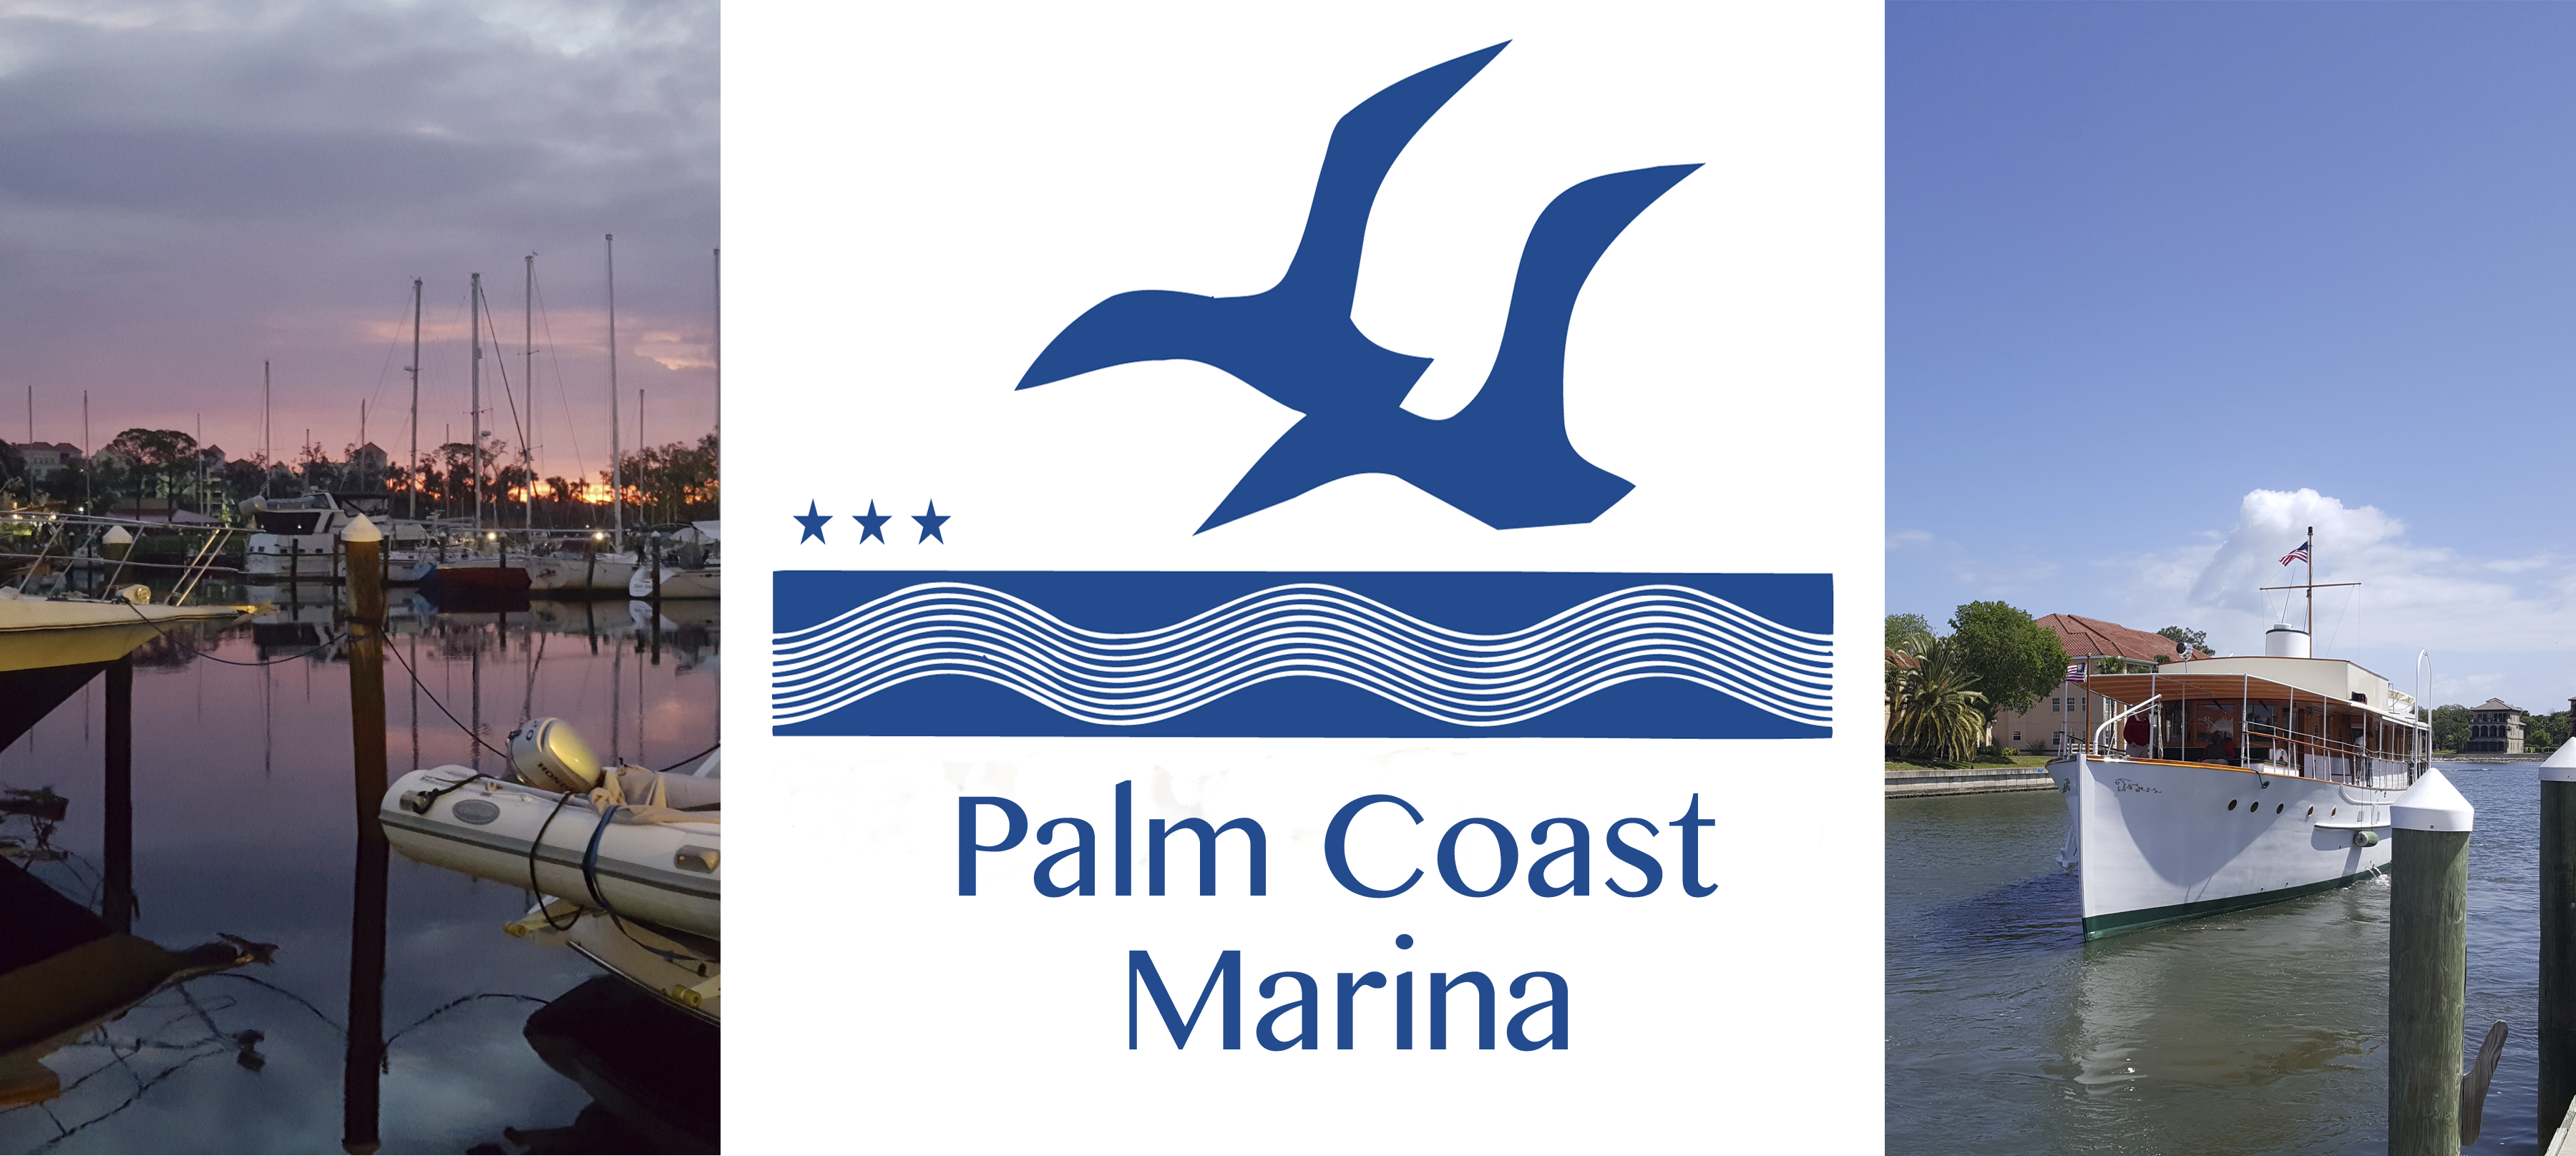 Palm Coast Marina